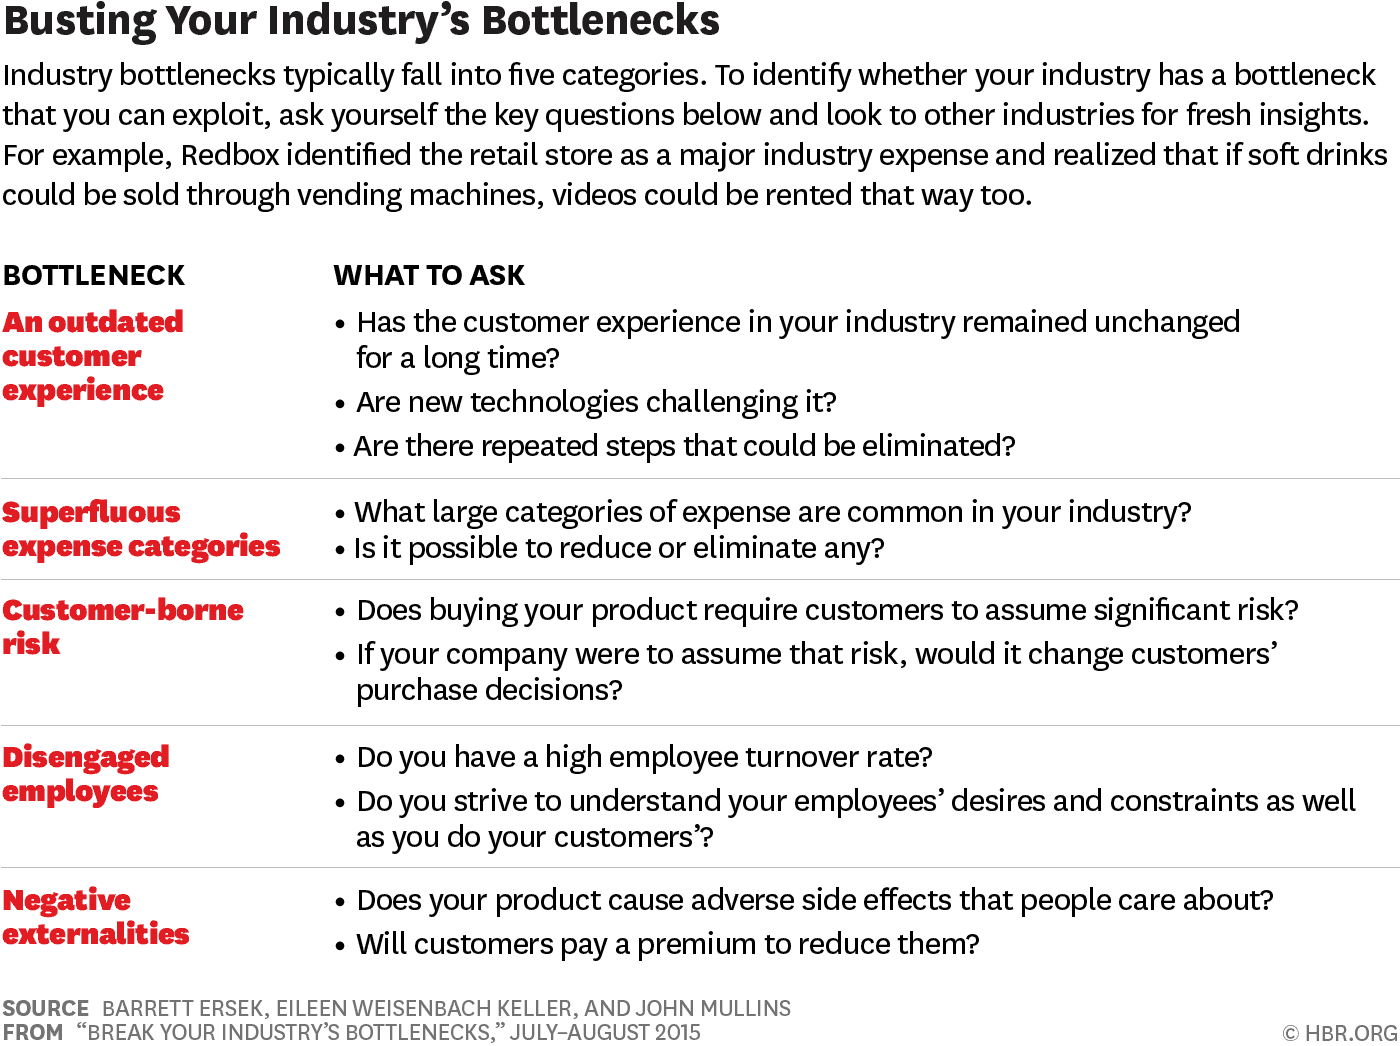 break your industry's bottlenecks HBR